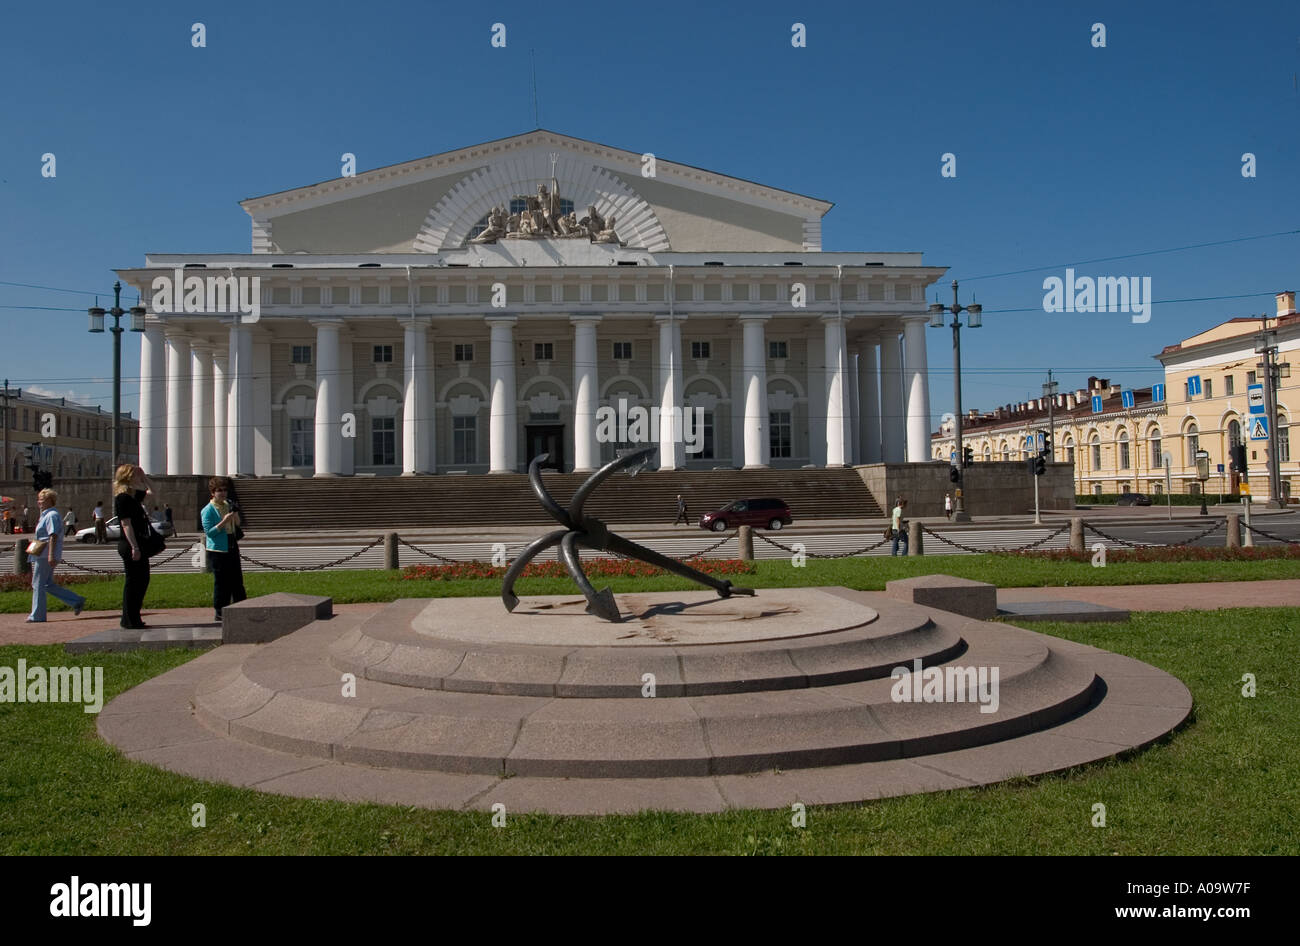 Naval Museum facade with anchor in foreground St Petersburg Russia Stock Photo